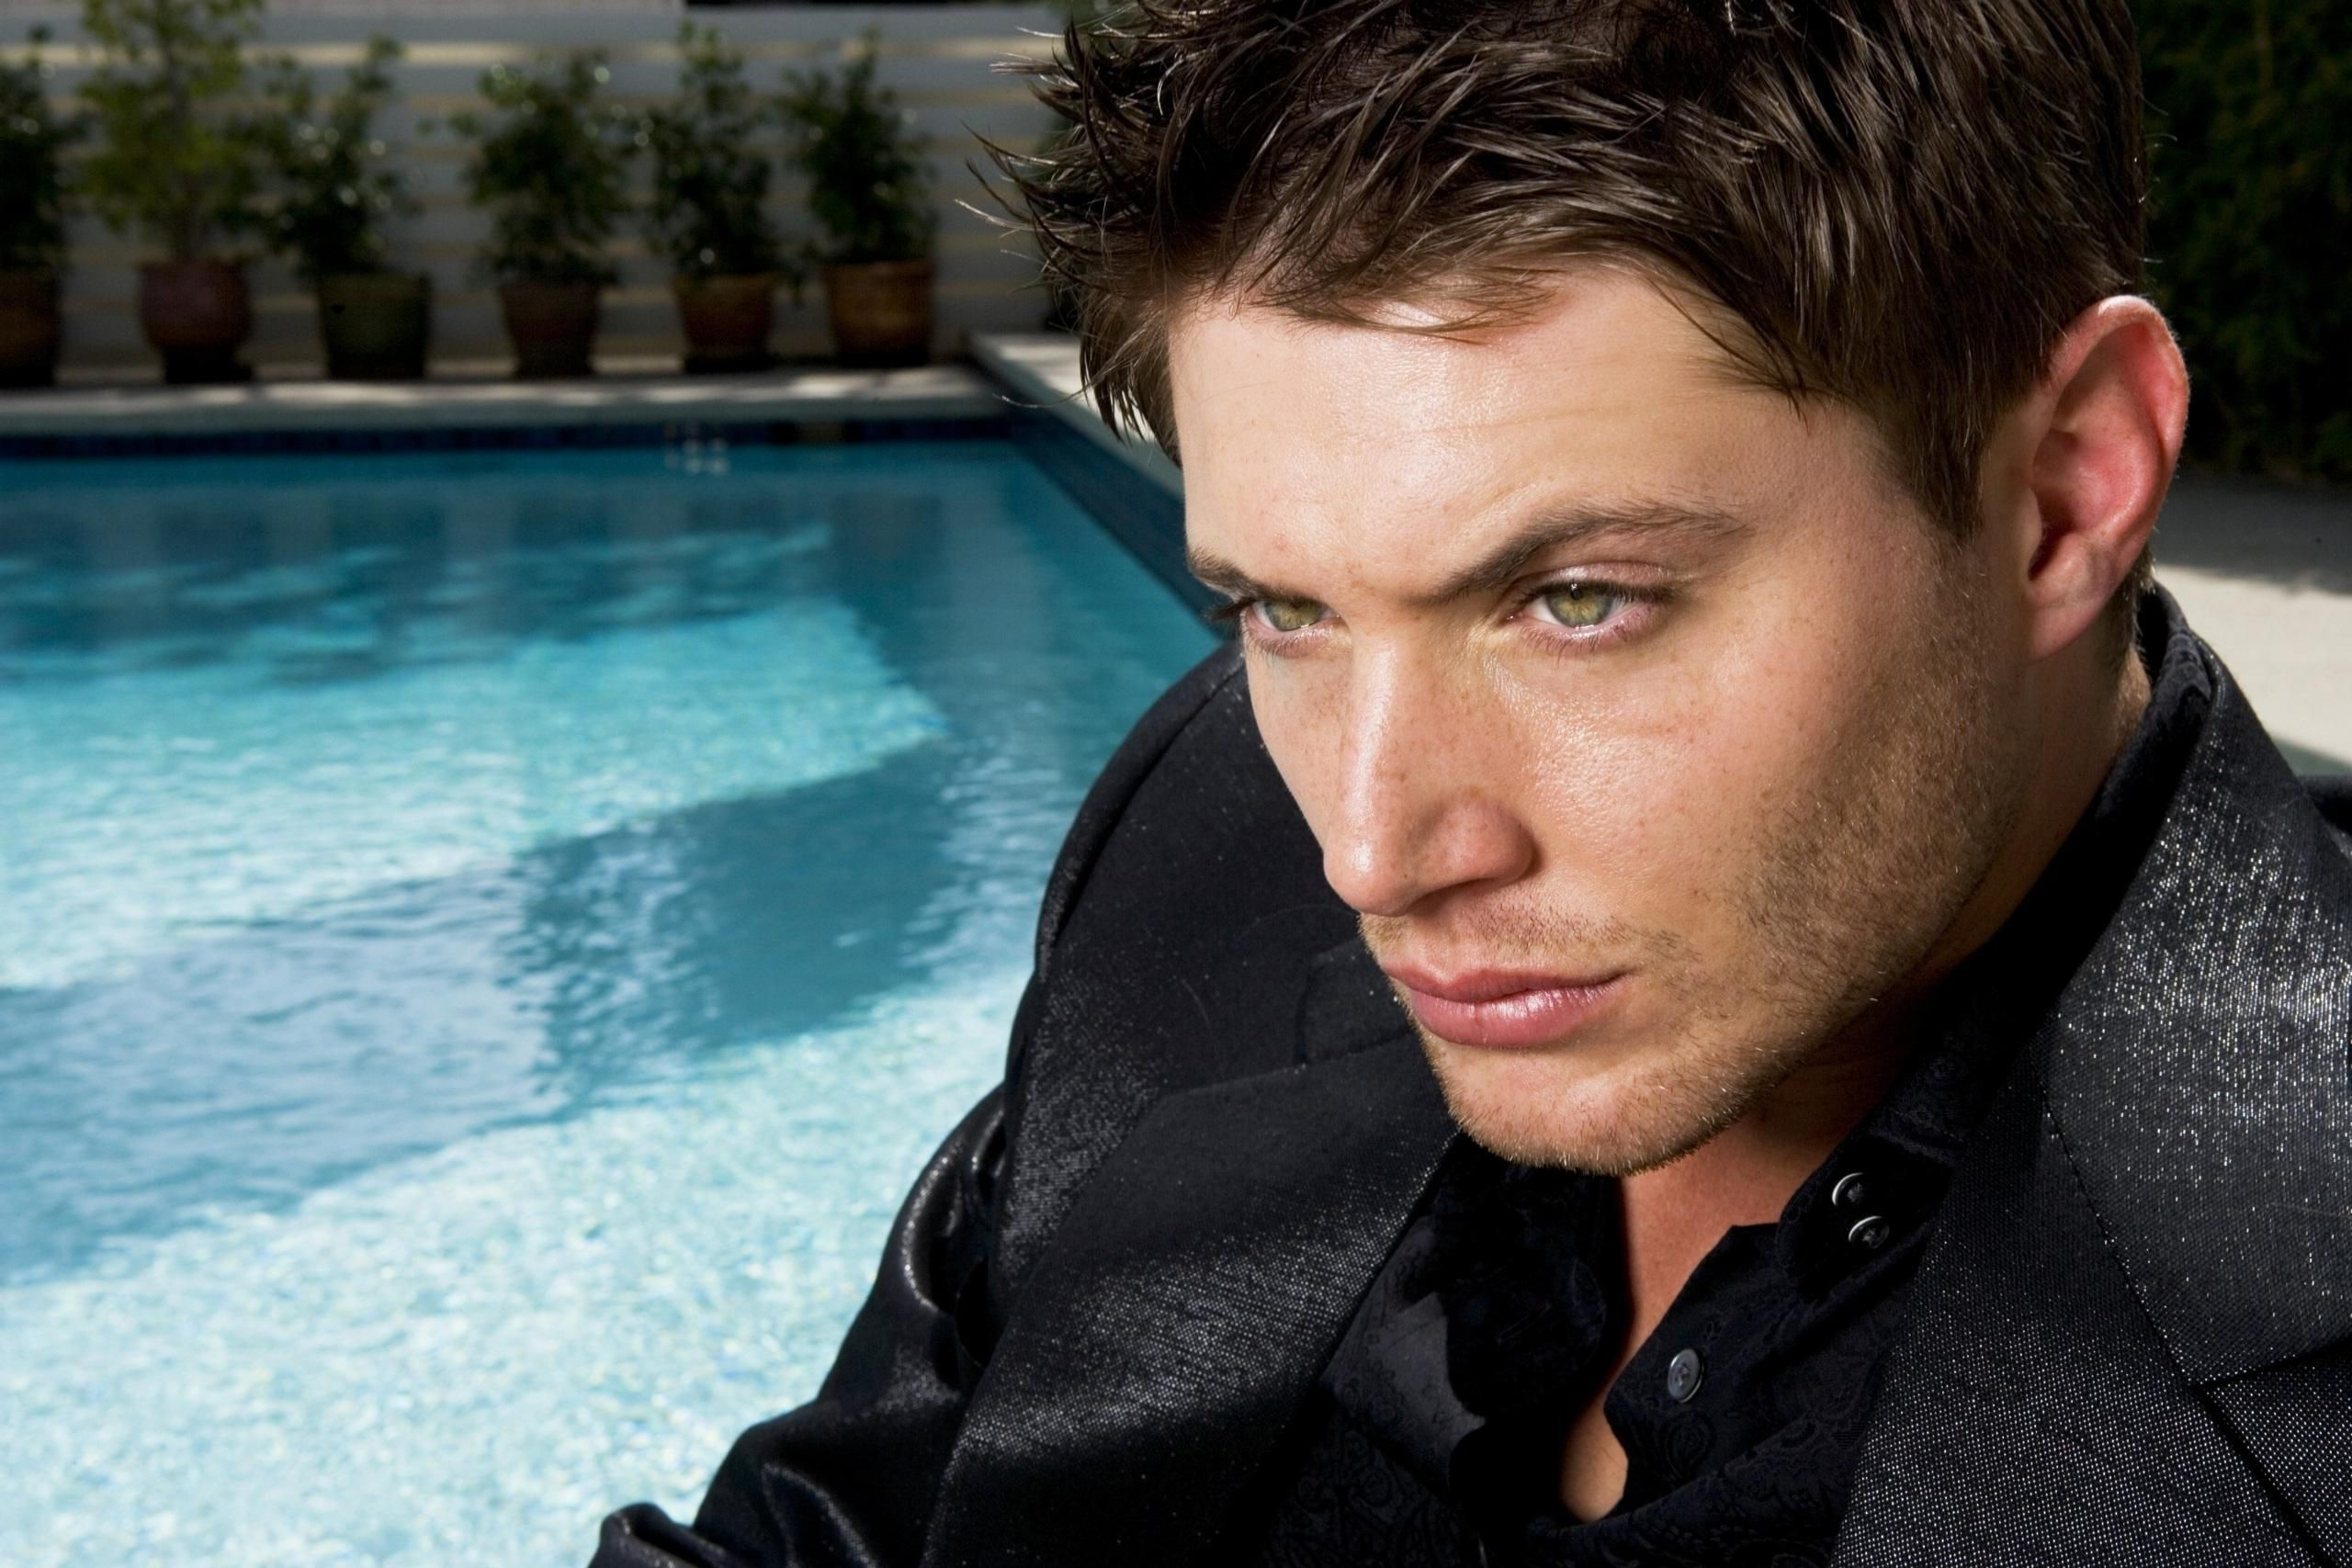 Jensen Ackles Celebrity Face Eyes Brooding Wallpaper